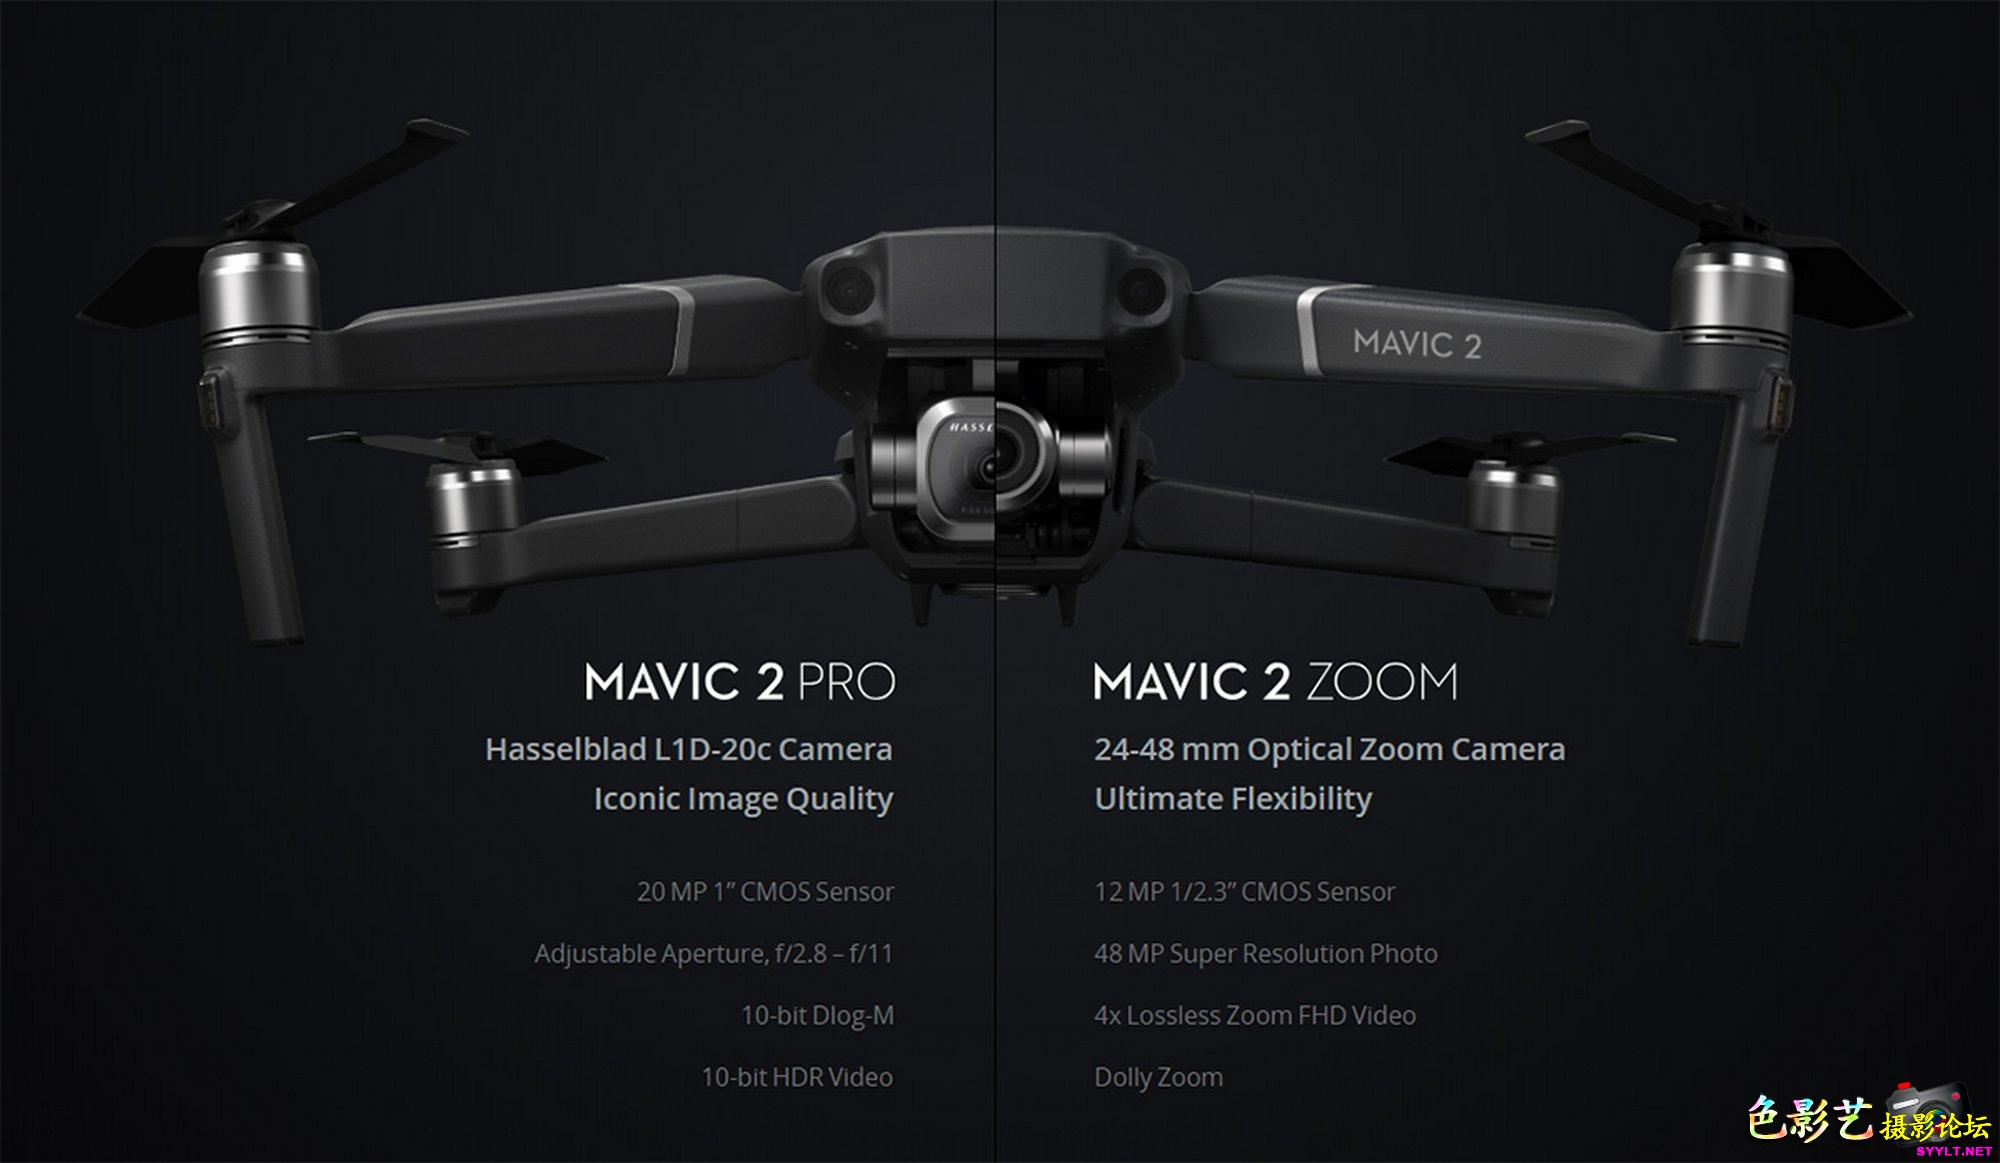 DJI-Mavic-2-Pro-and-Mavic-2-Zoom-camera-comparison.jpg